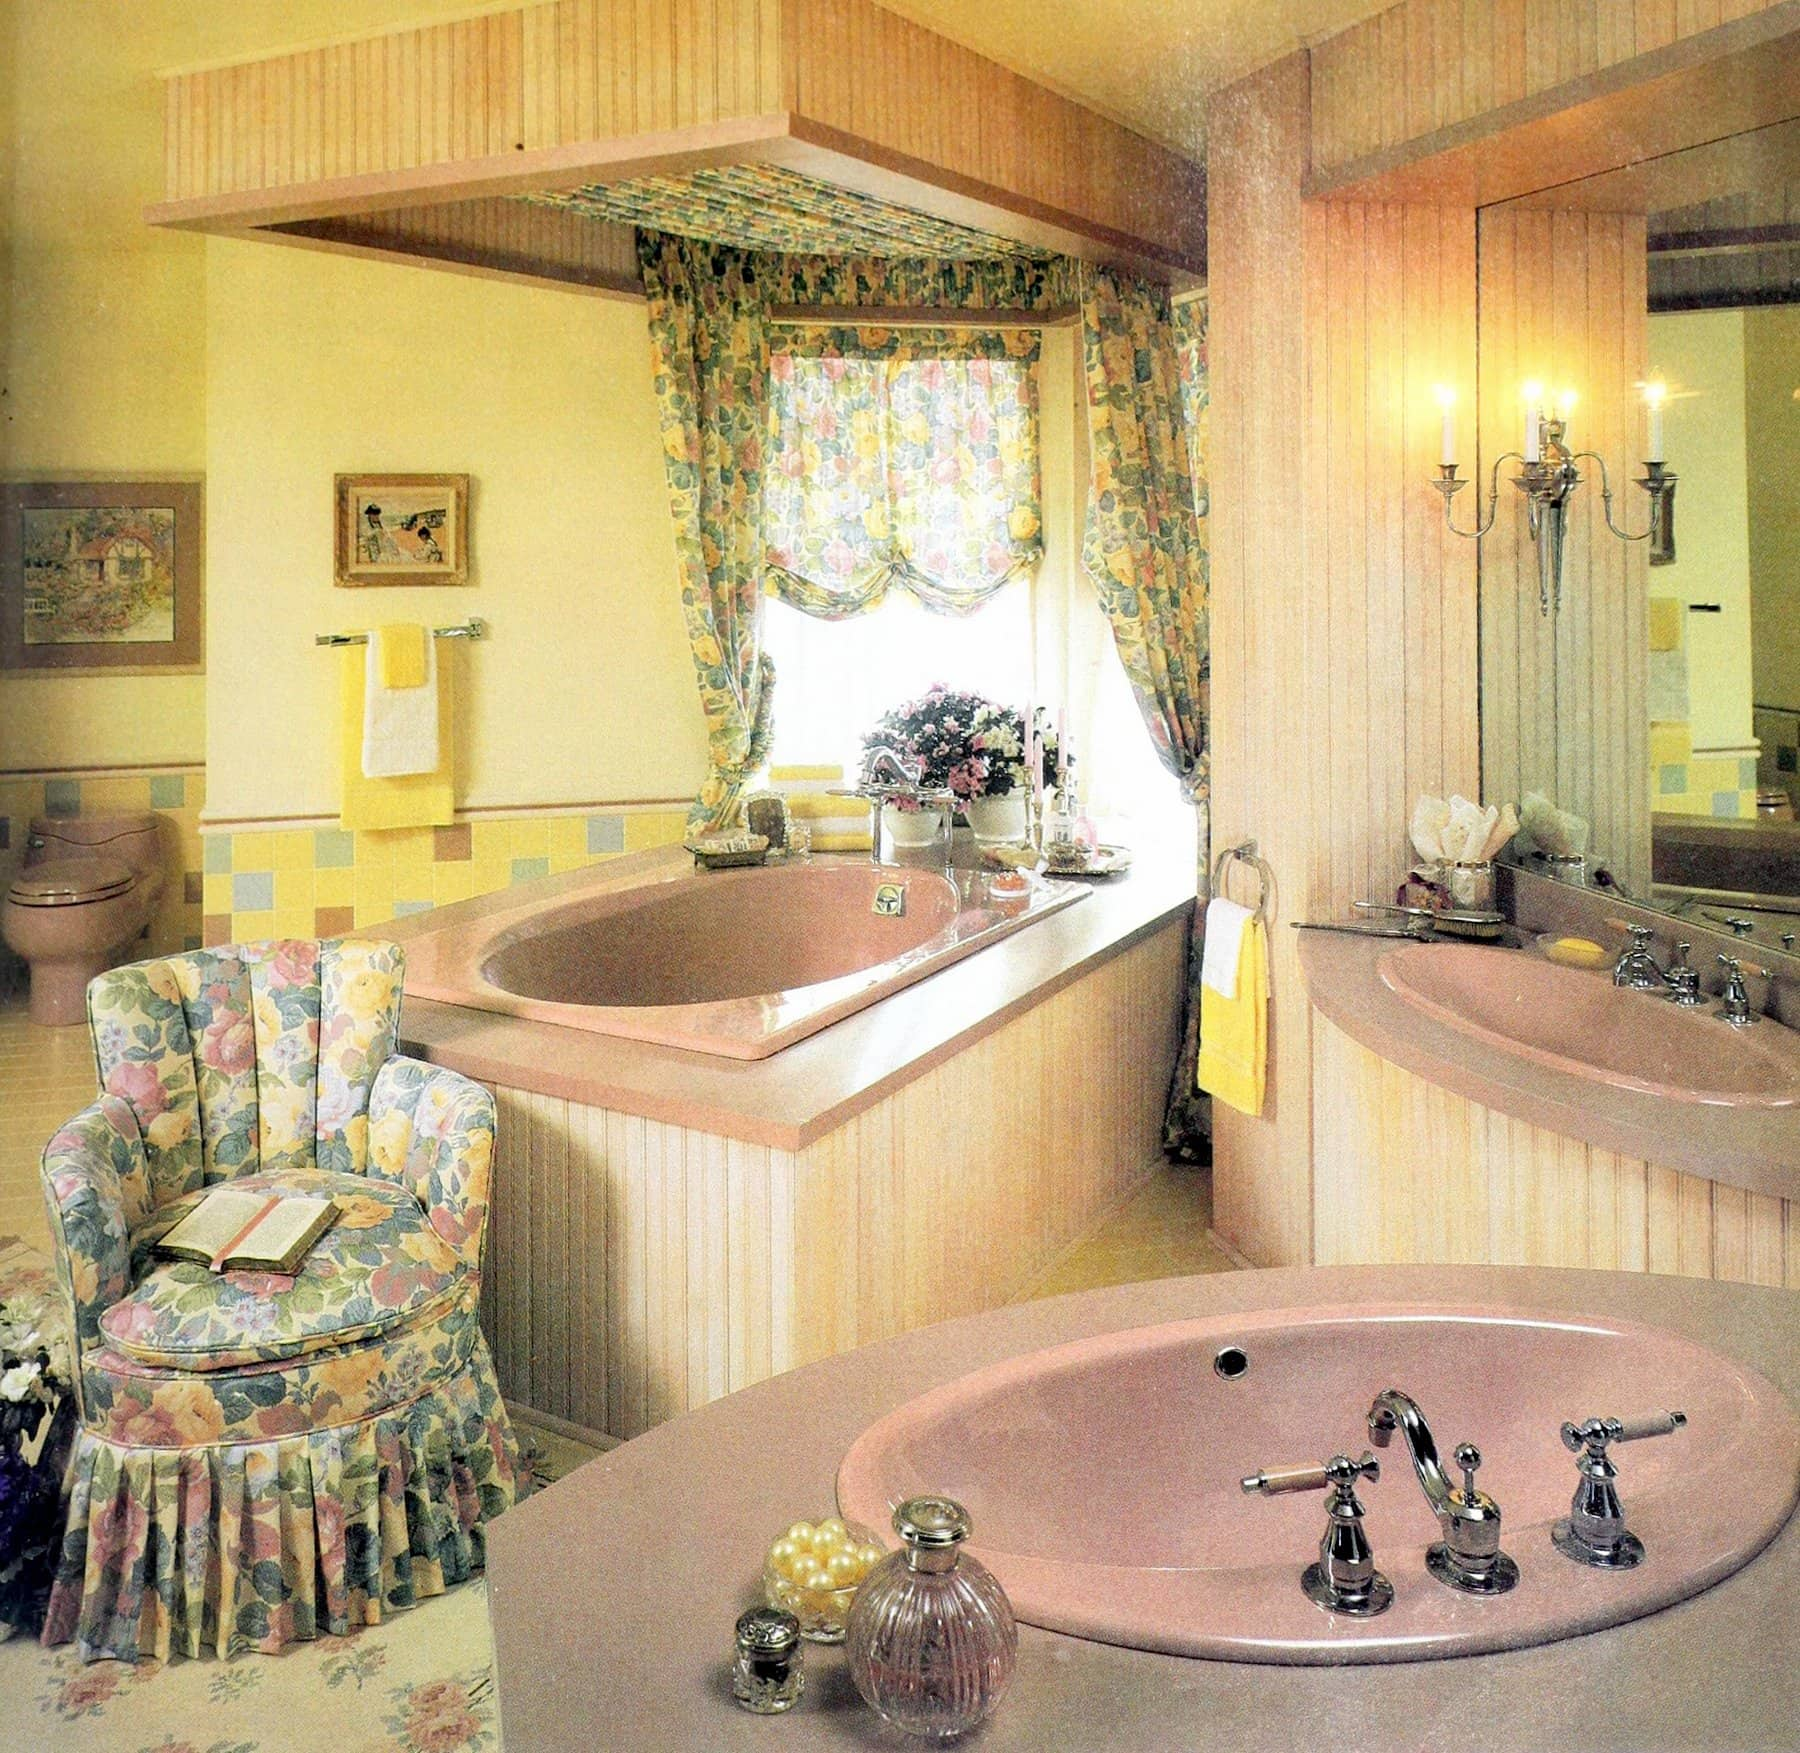 Dusky pink bathroom suite with frilly 80s decor